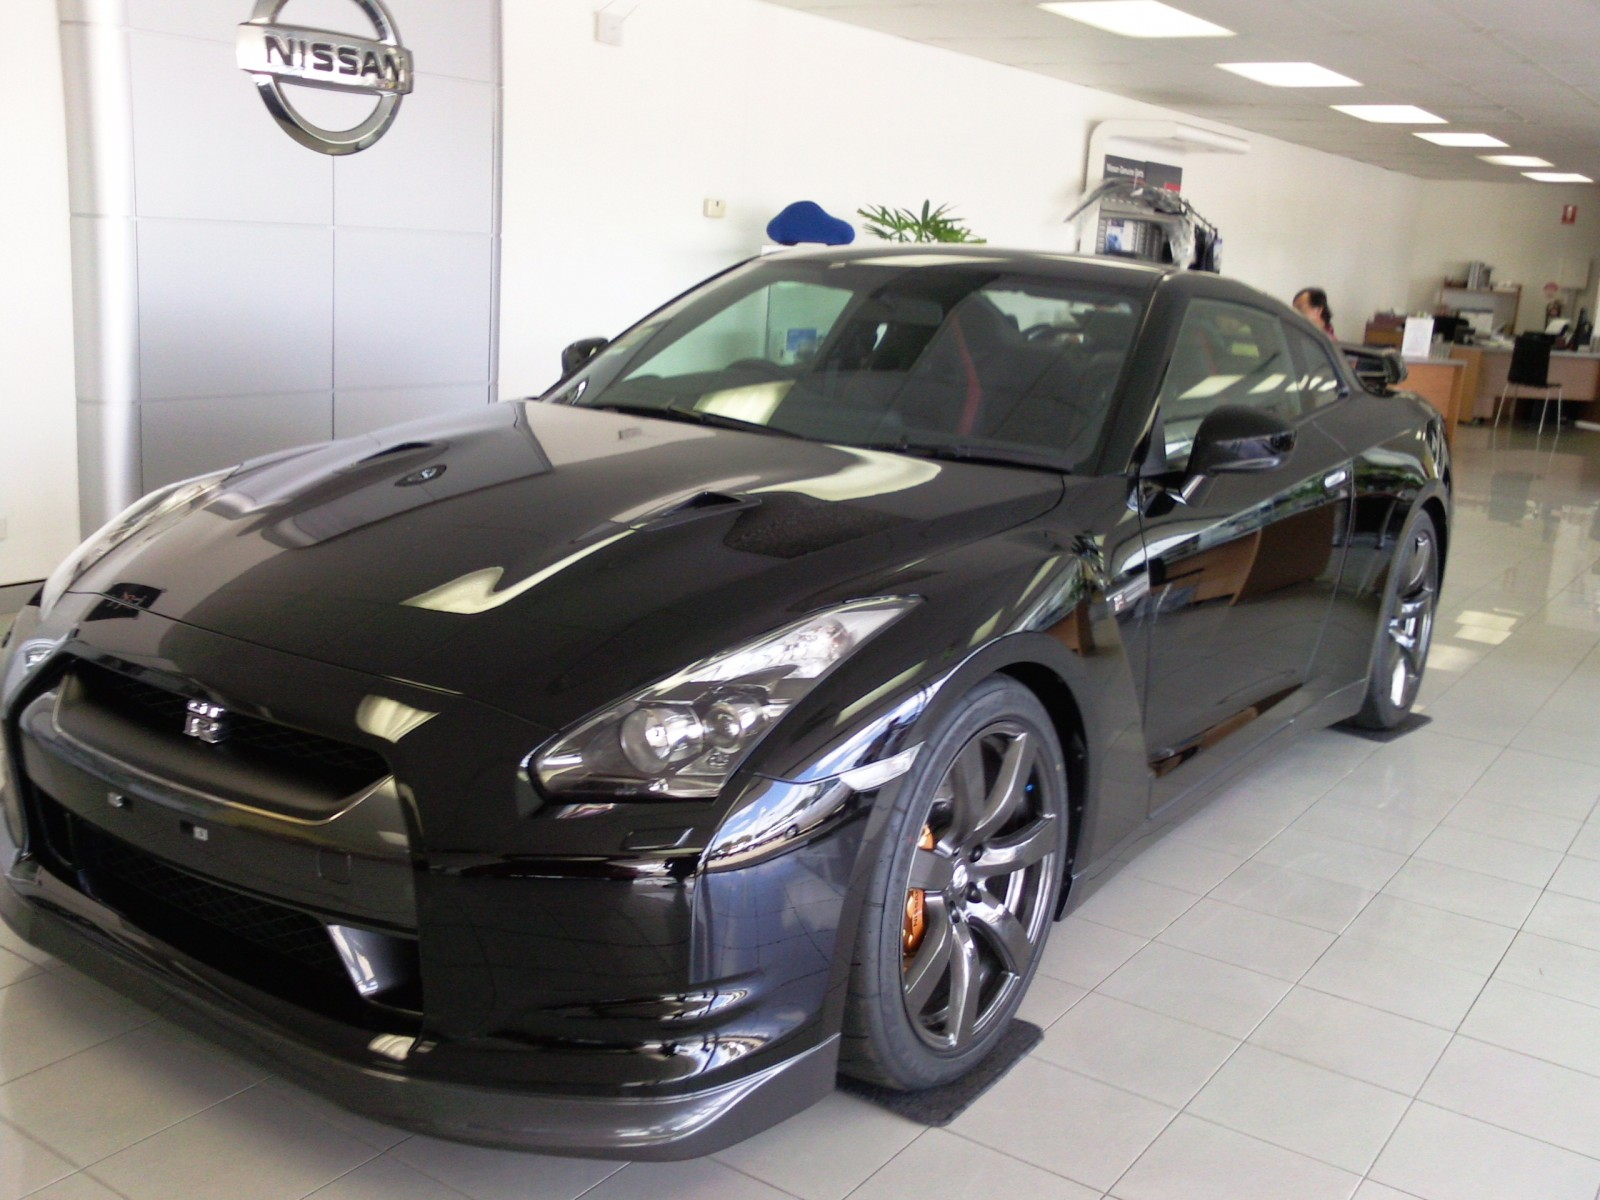 Gtr Dealerships: Nissan